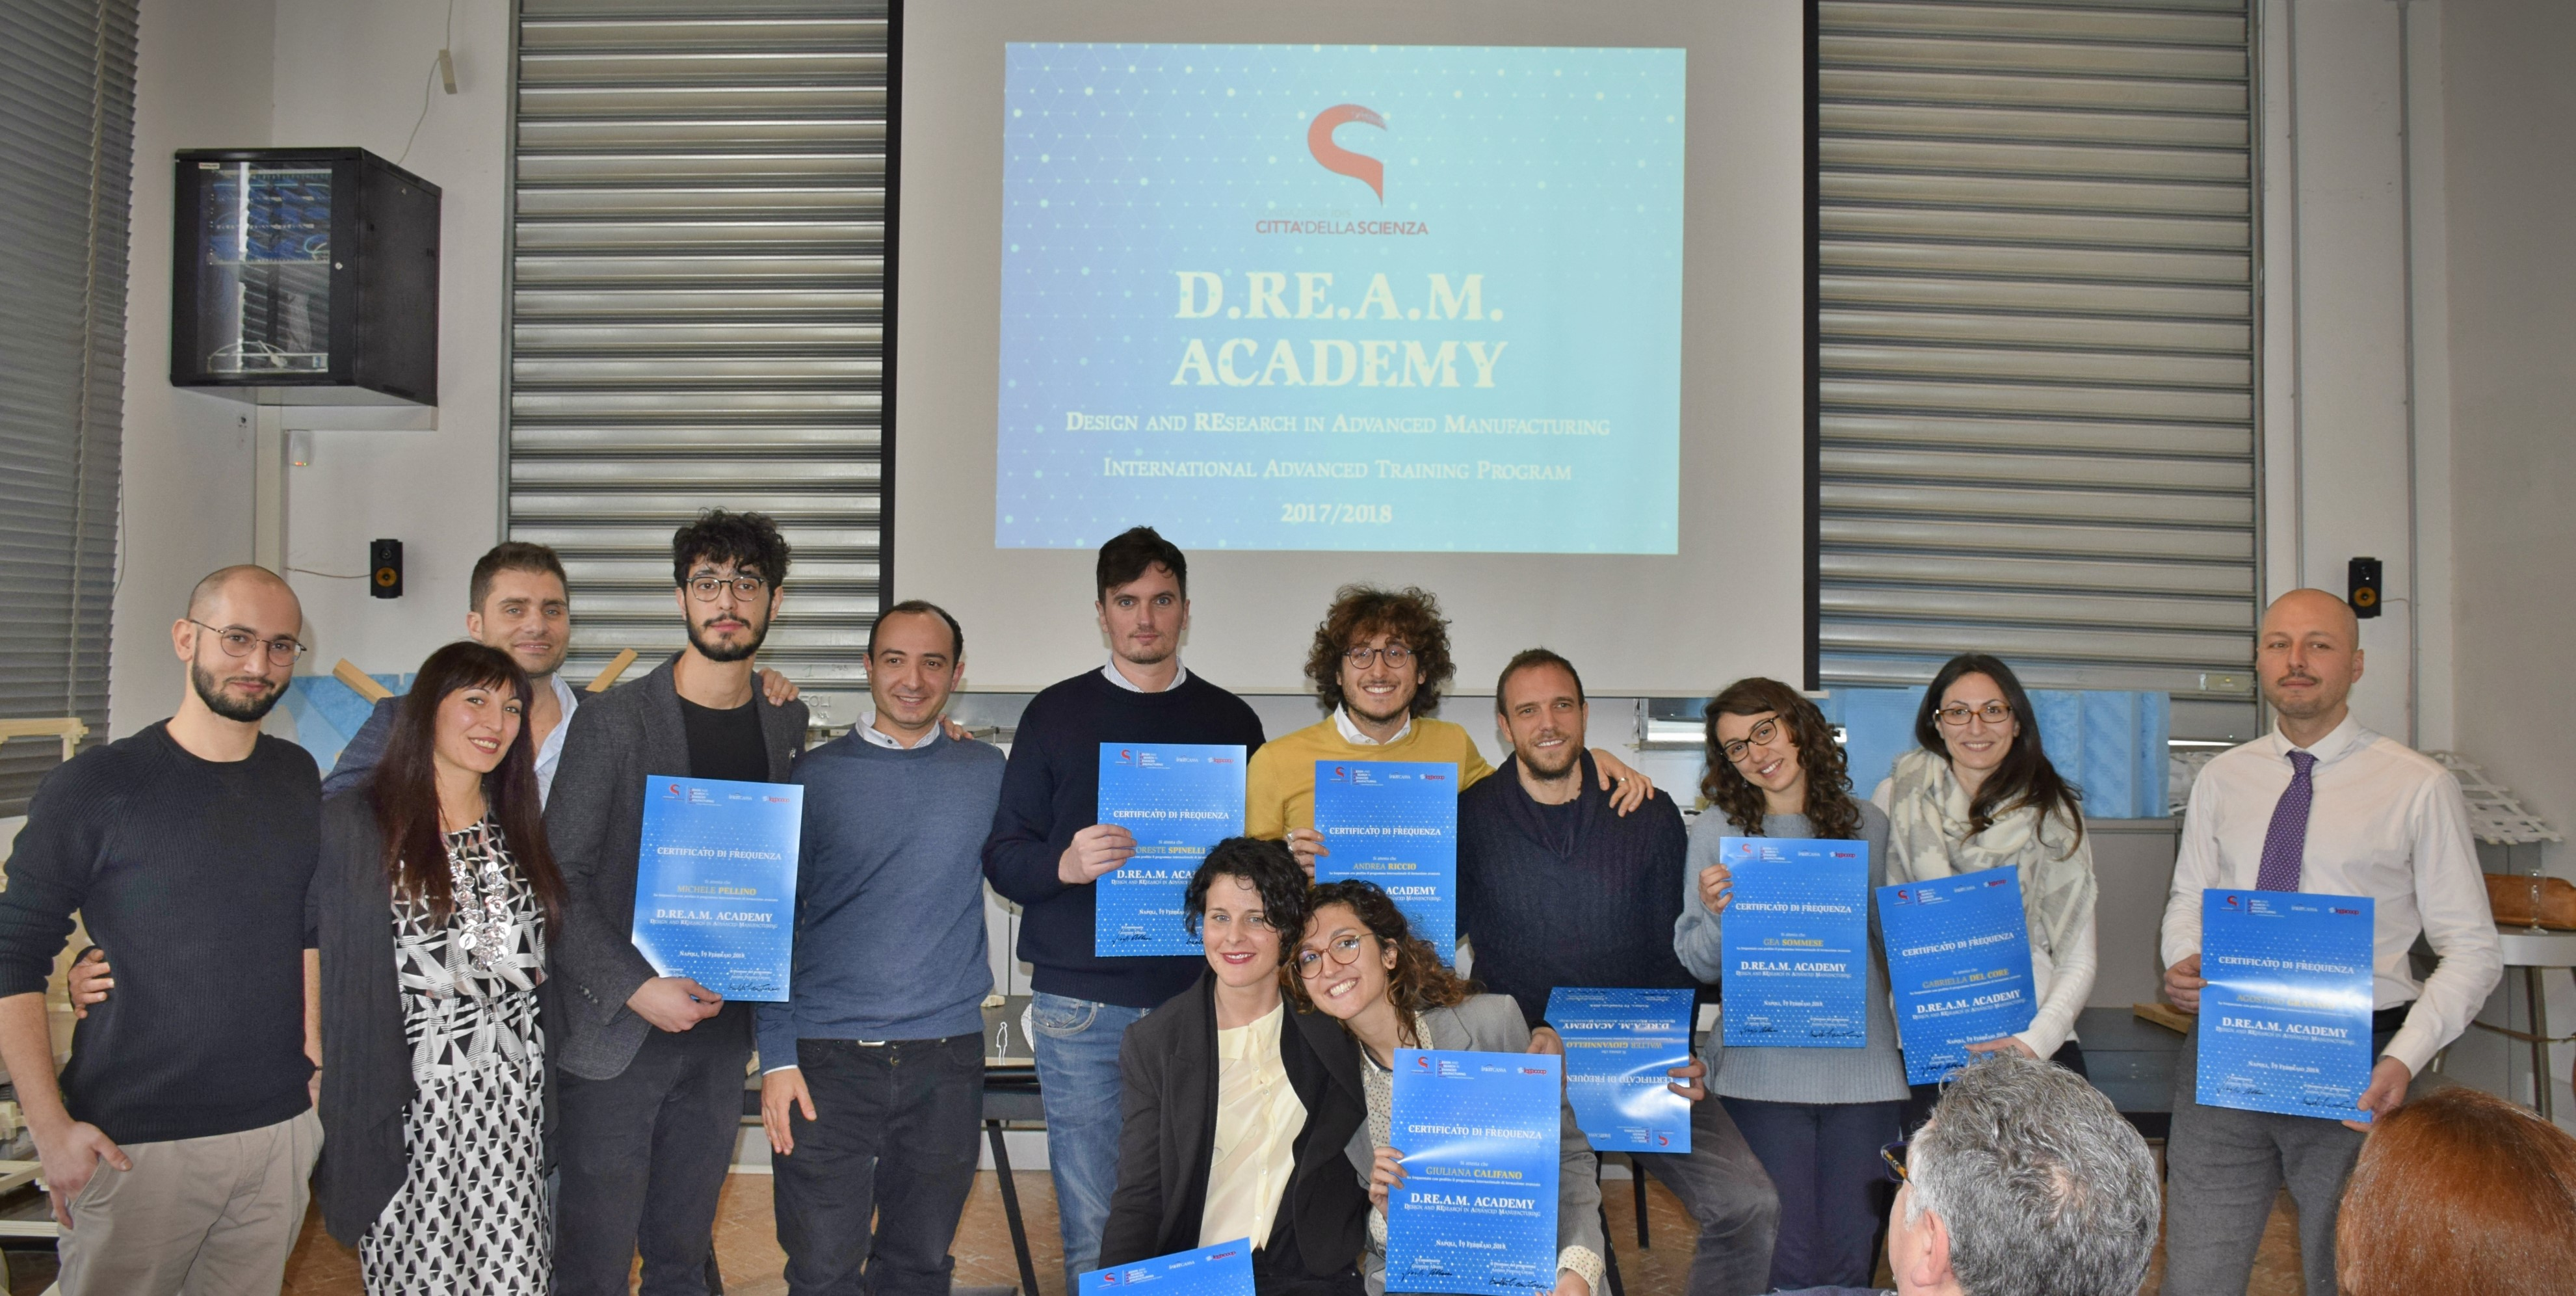 dream academy 2017